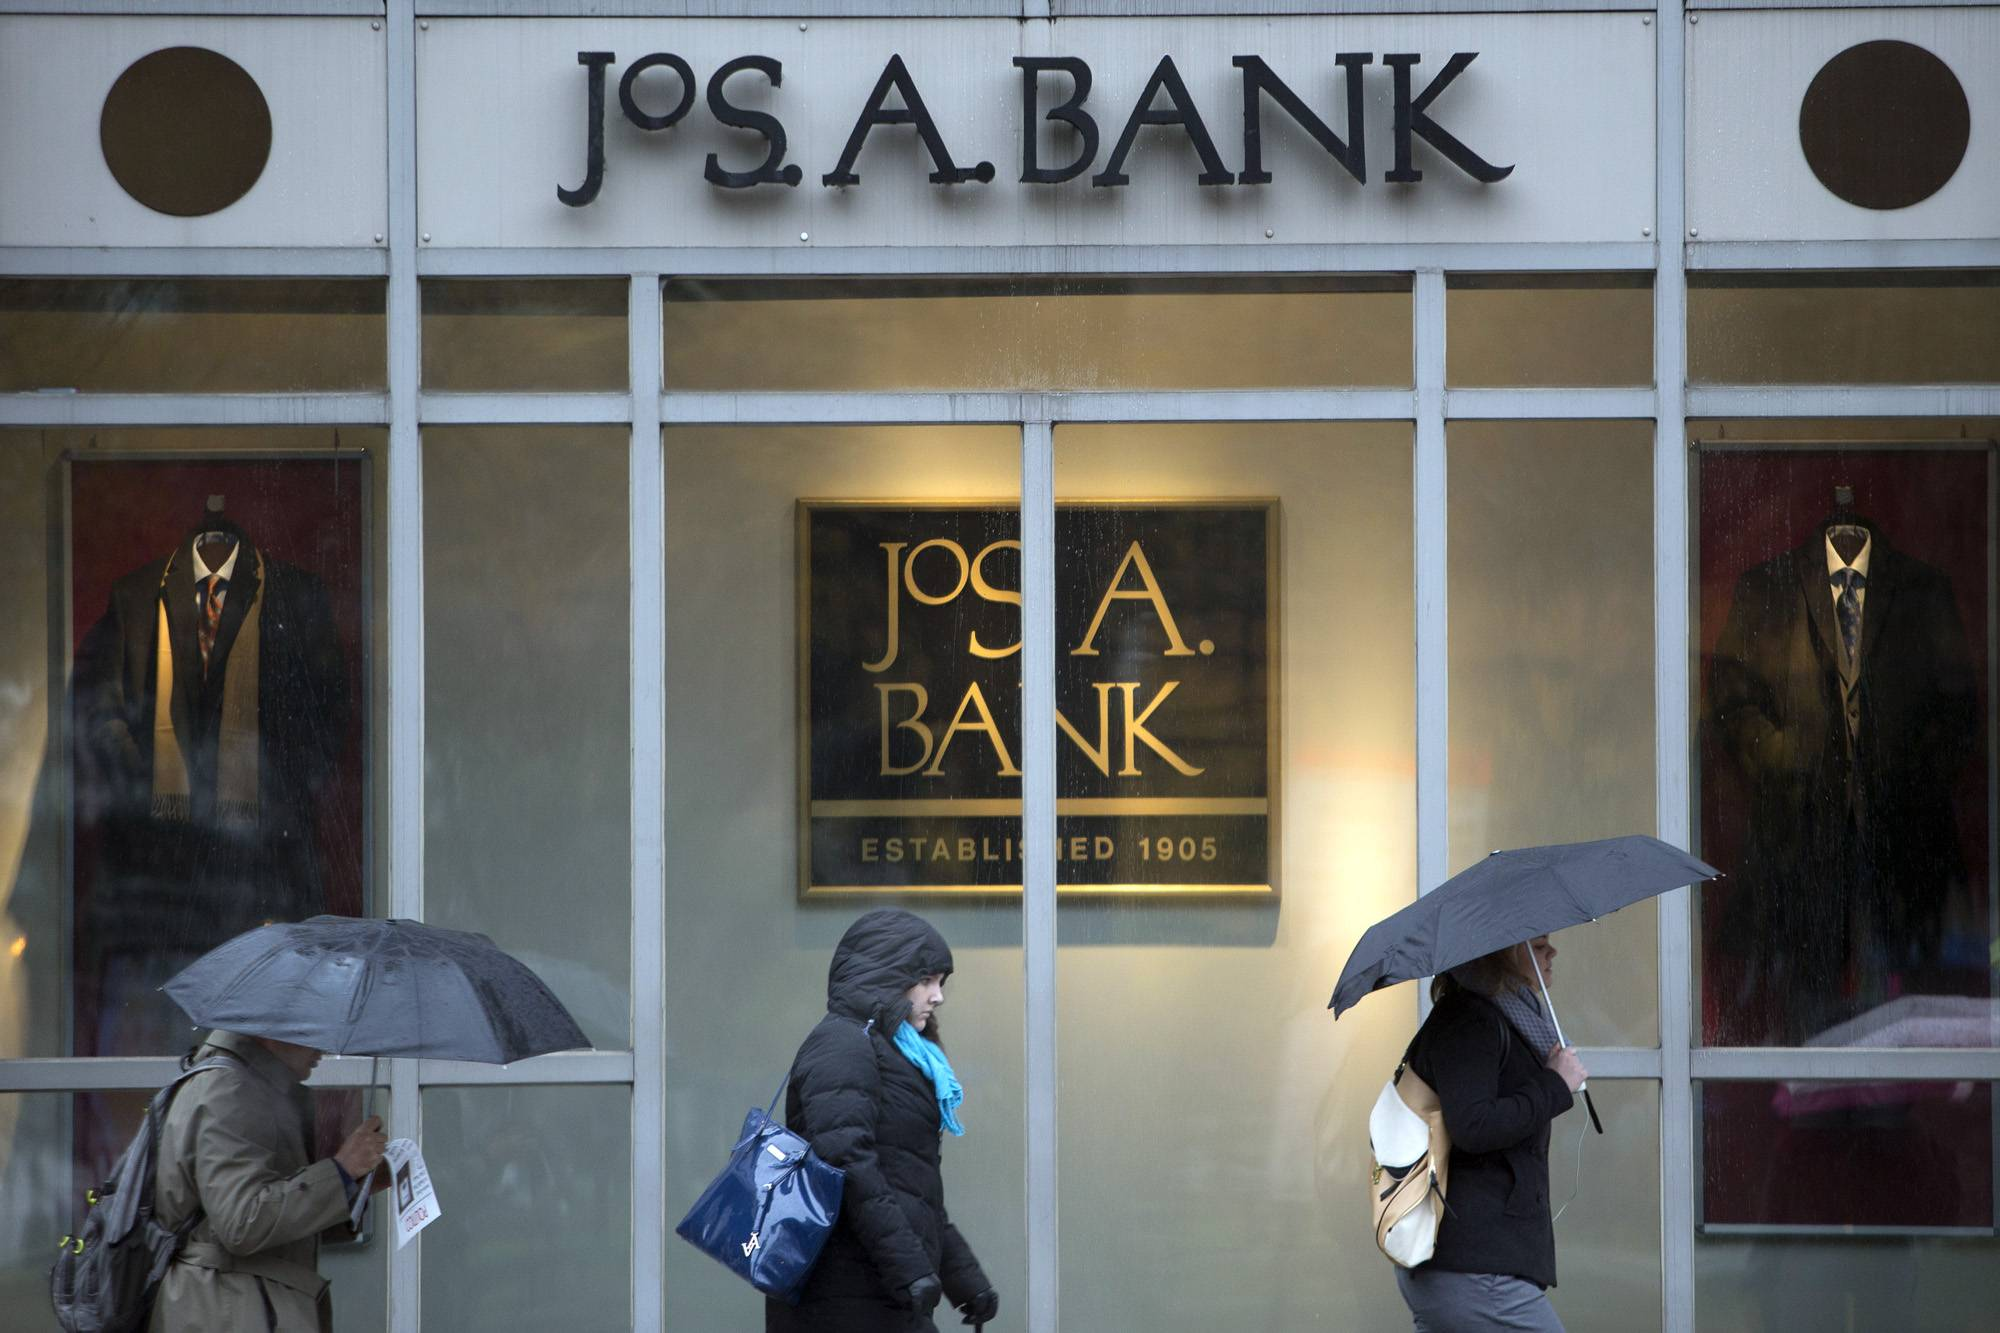 Pedestrians carrying umbrellas walk past a Jos. A. Bank Clothiers Inc. store in Washington, D.C., U.S., on Tuesday, Nov. 26, 2013. Men's Wearhouse Inc., which less than two weeks ago let a takeover bid from Jos. A. Bank Clothiers expire without entering discussions, today offered to buy its smaller rival for about $1.54 billion. Photographer: Andrew Harrer/Bloomberg